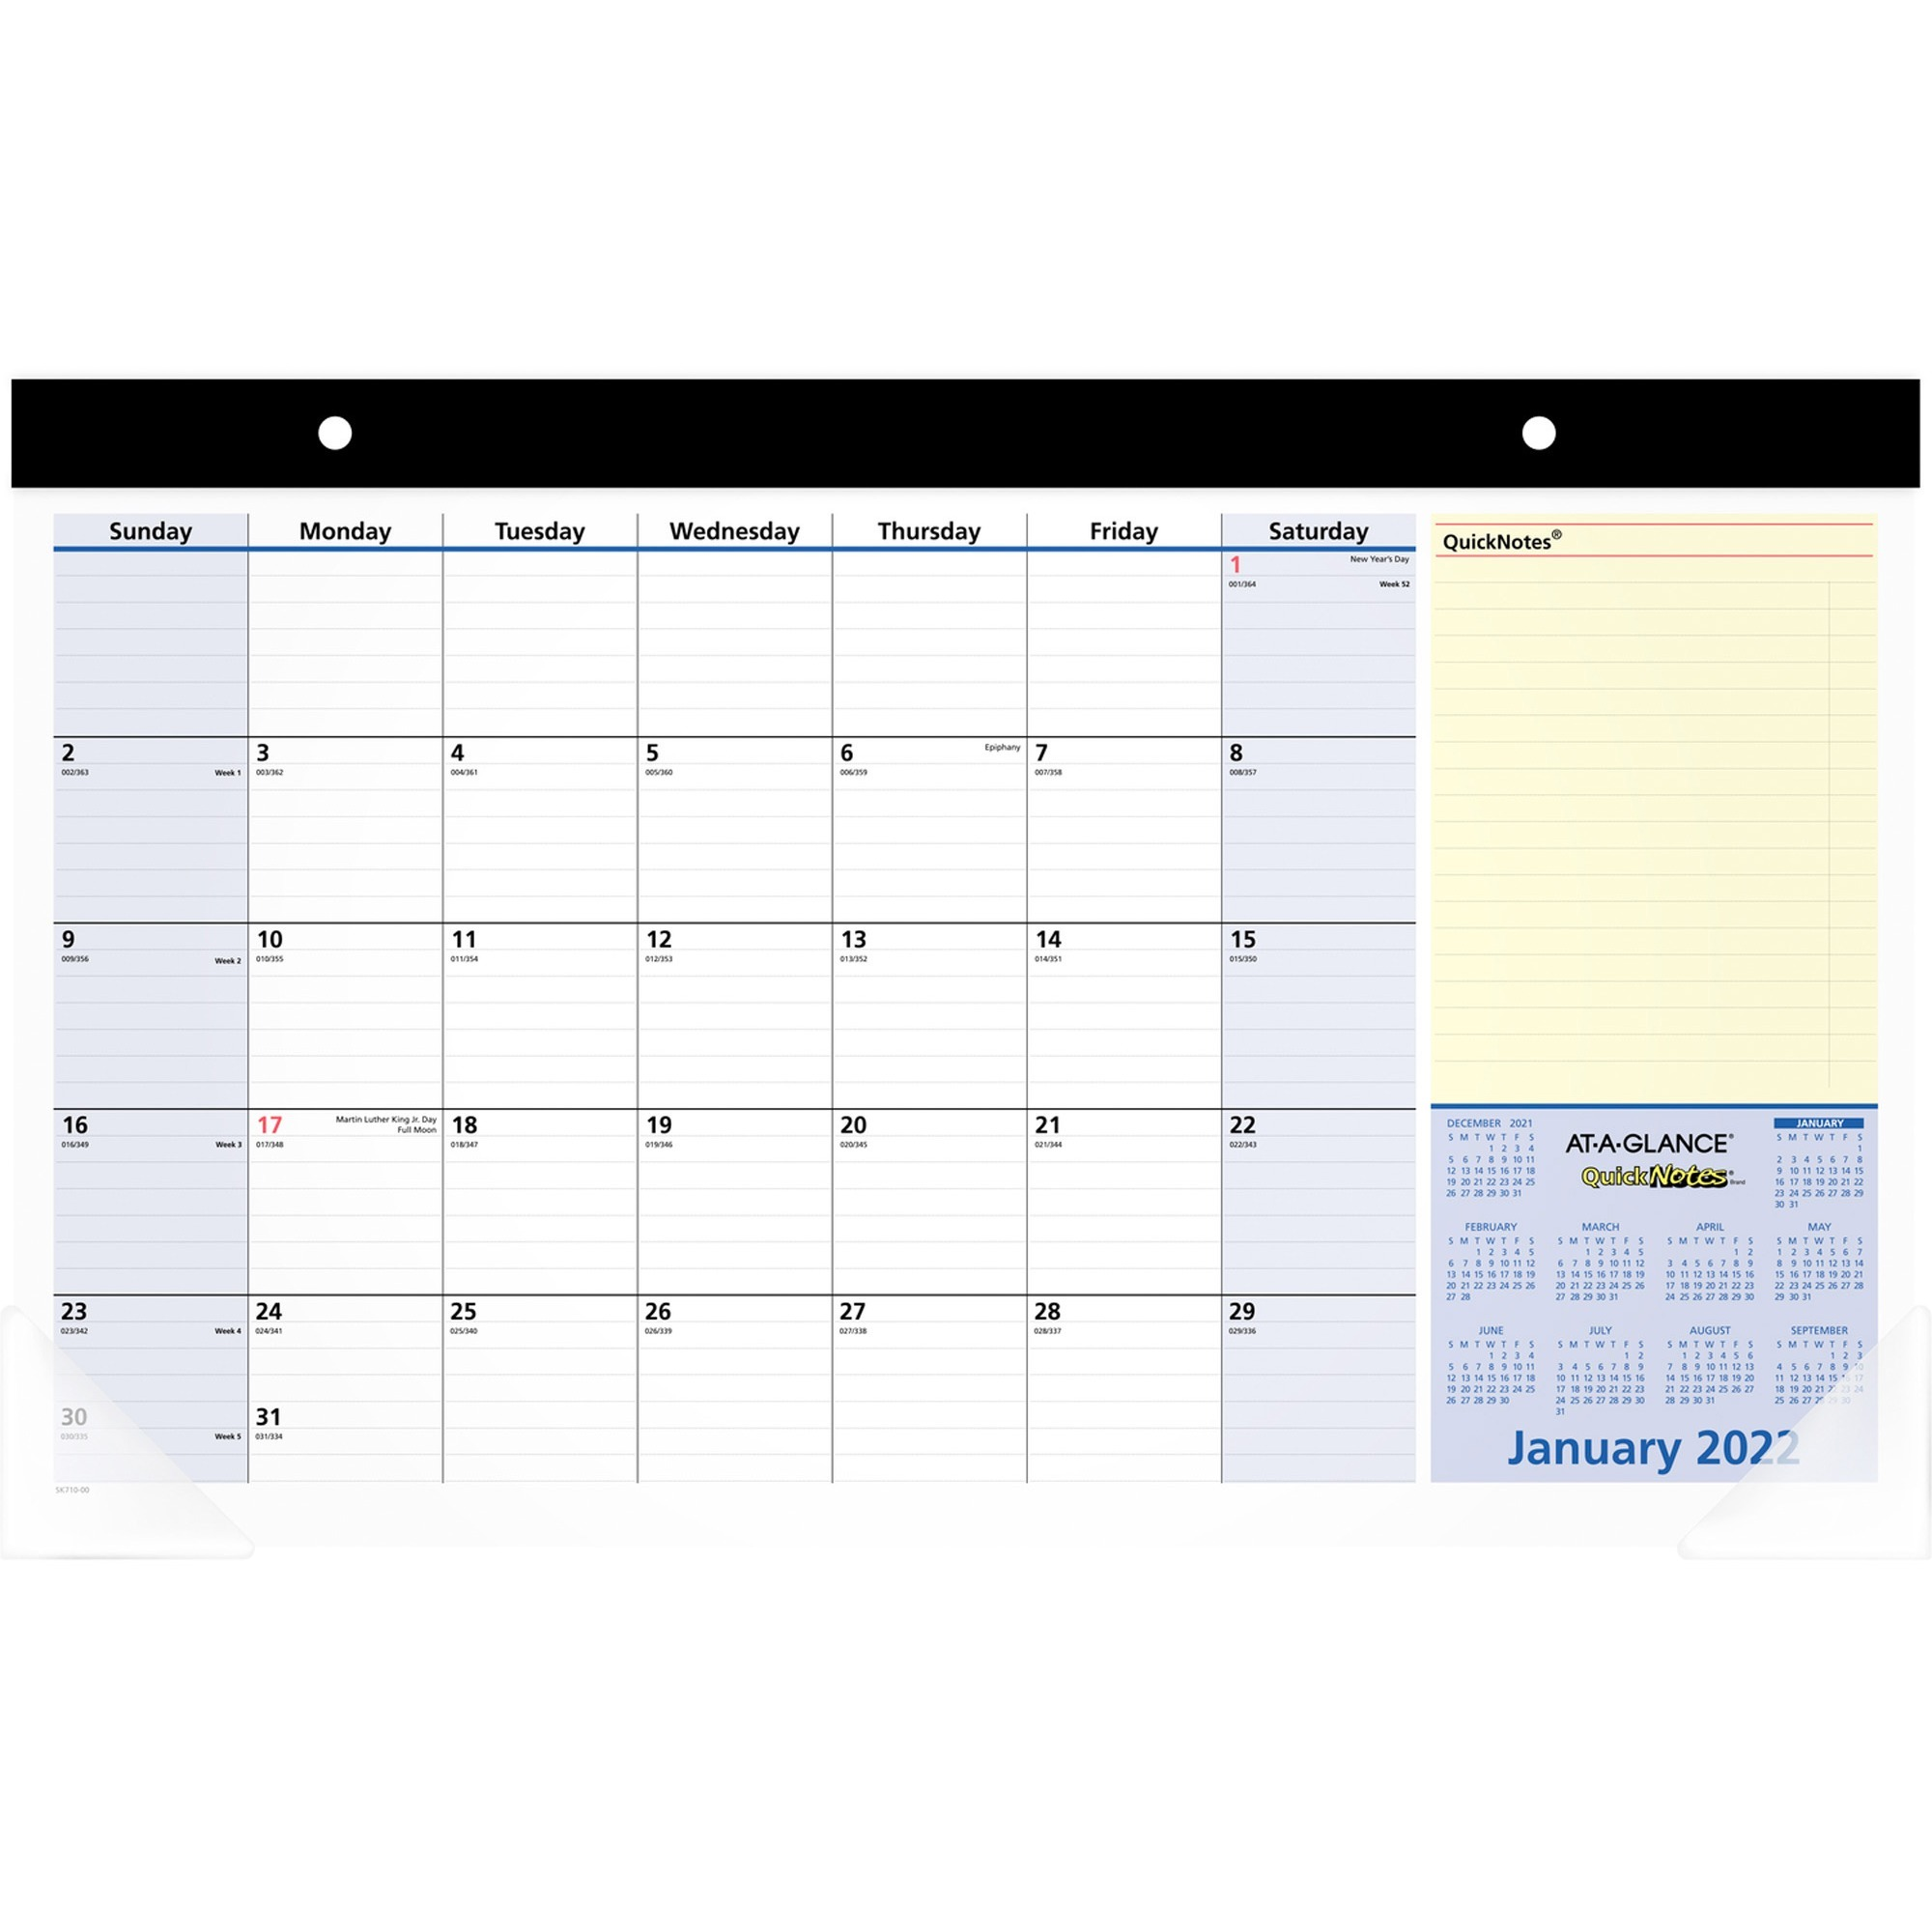 At-A-Glance QuickNotes Monthly Desk Pad - Yes - Monthly - 1.1 Year - January 2020 till January 2021 - 1 Month Single Page Layout - 17 3/4